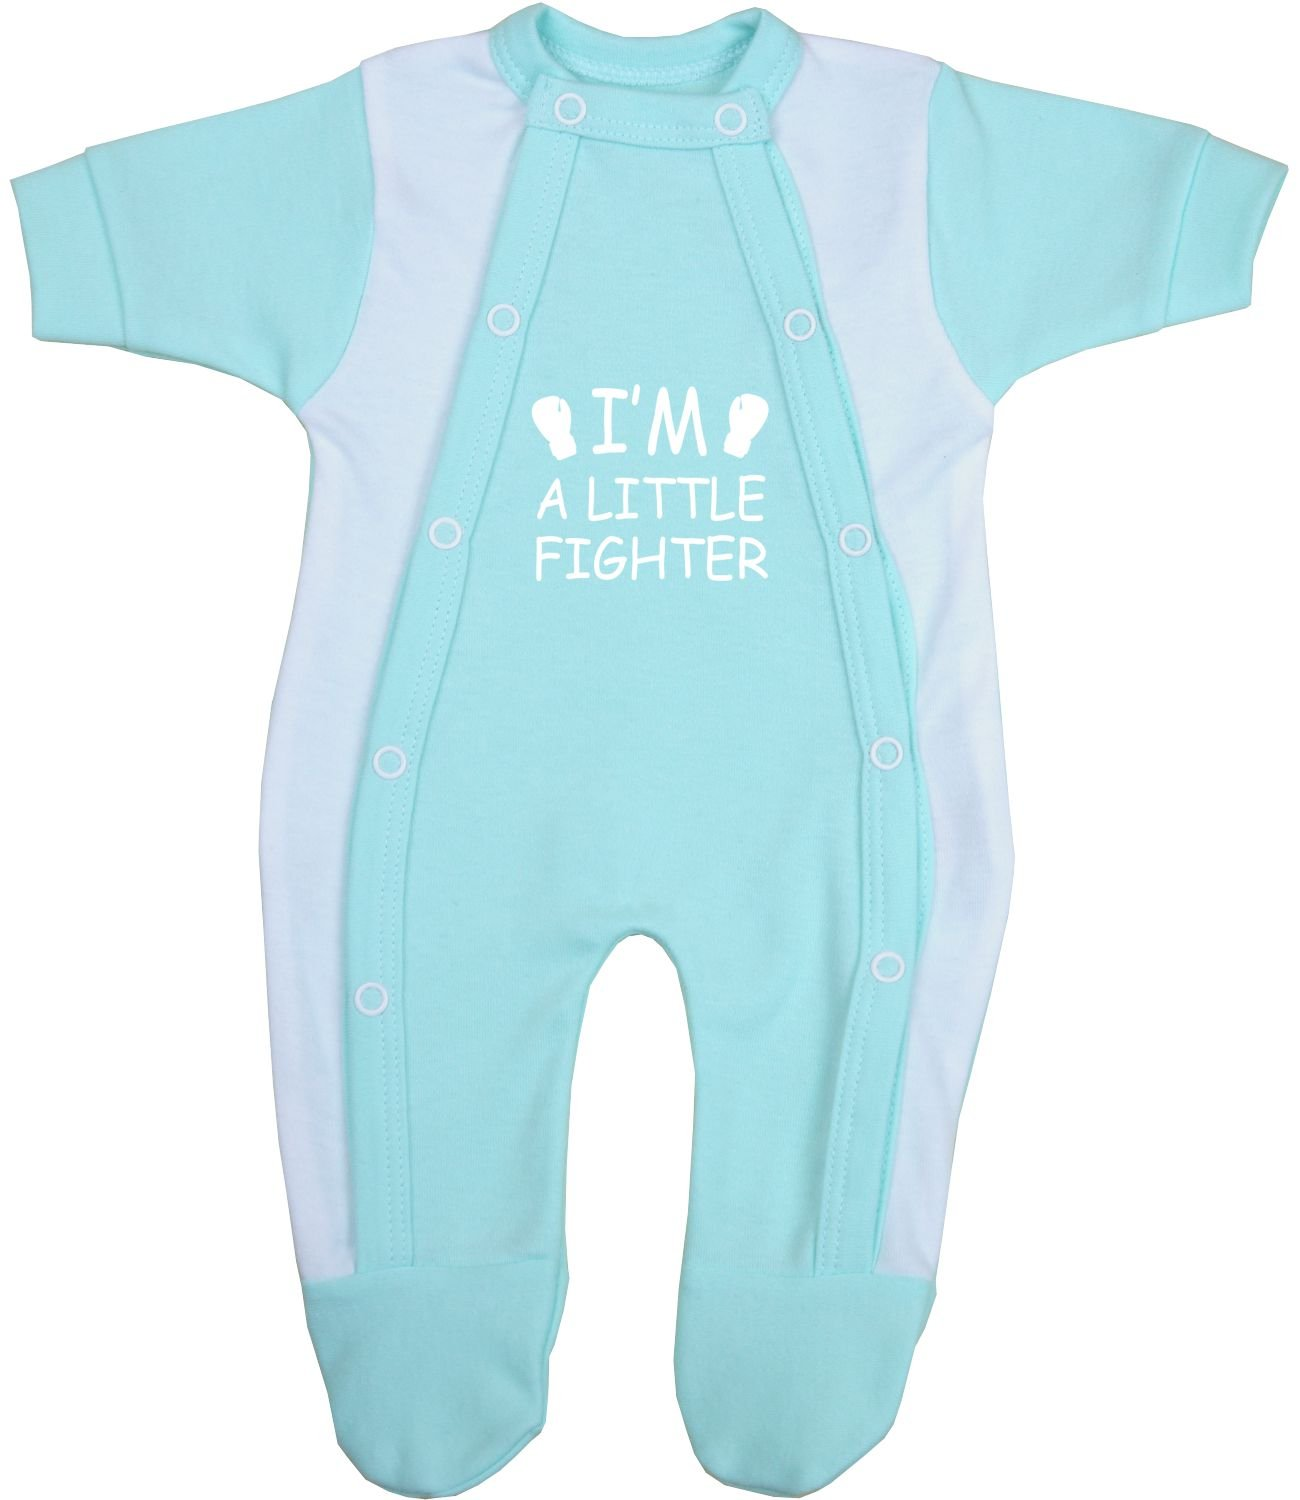 BabyPrem Preemie Baby Footie Sleeper Little Fighter Clothes 1.5 - 7.5lb LB133